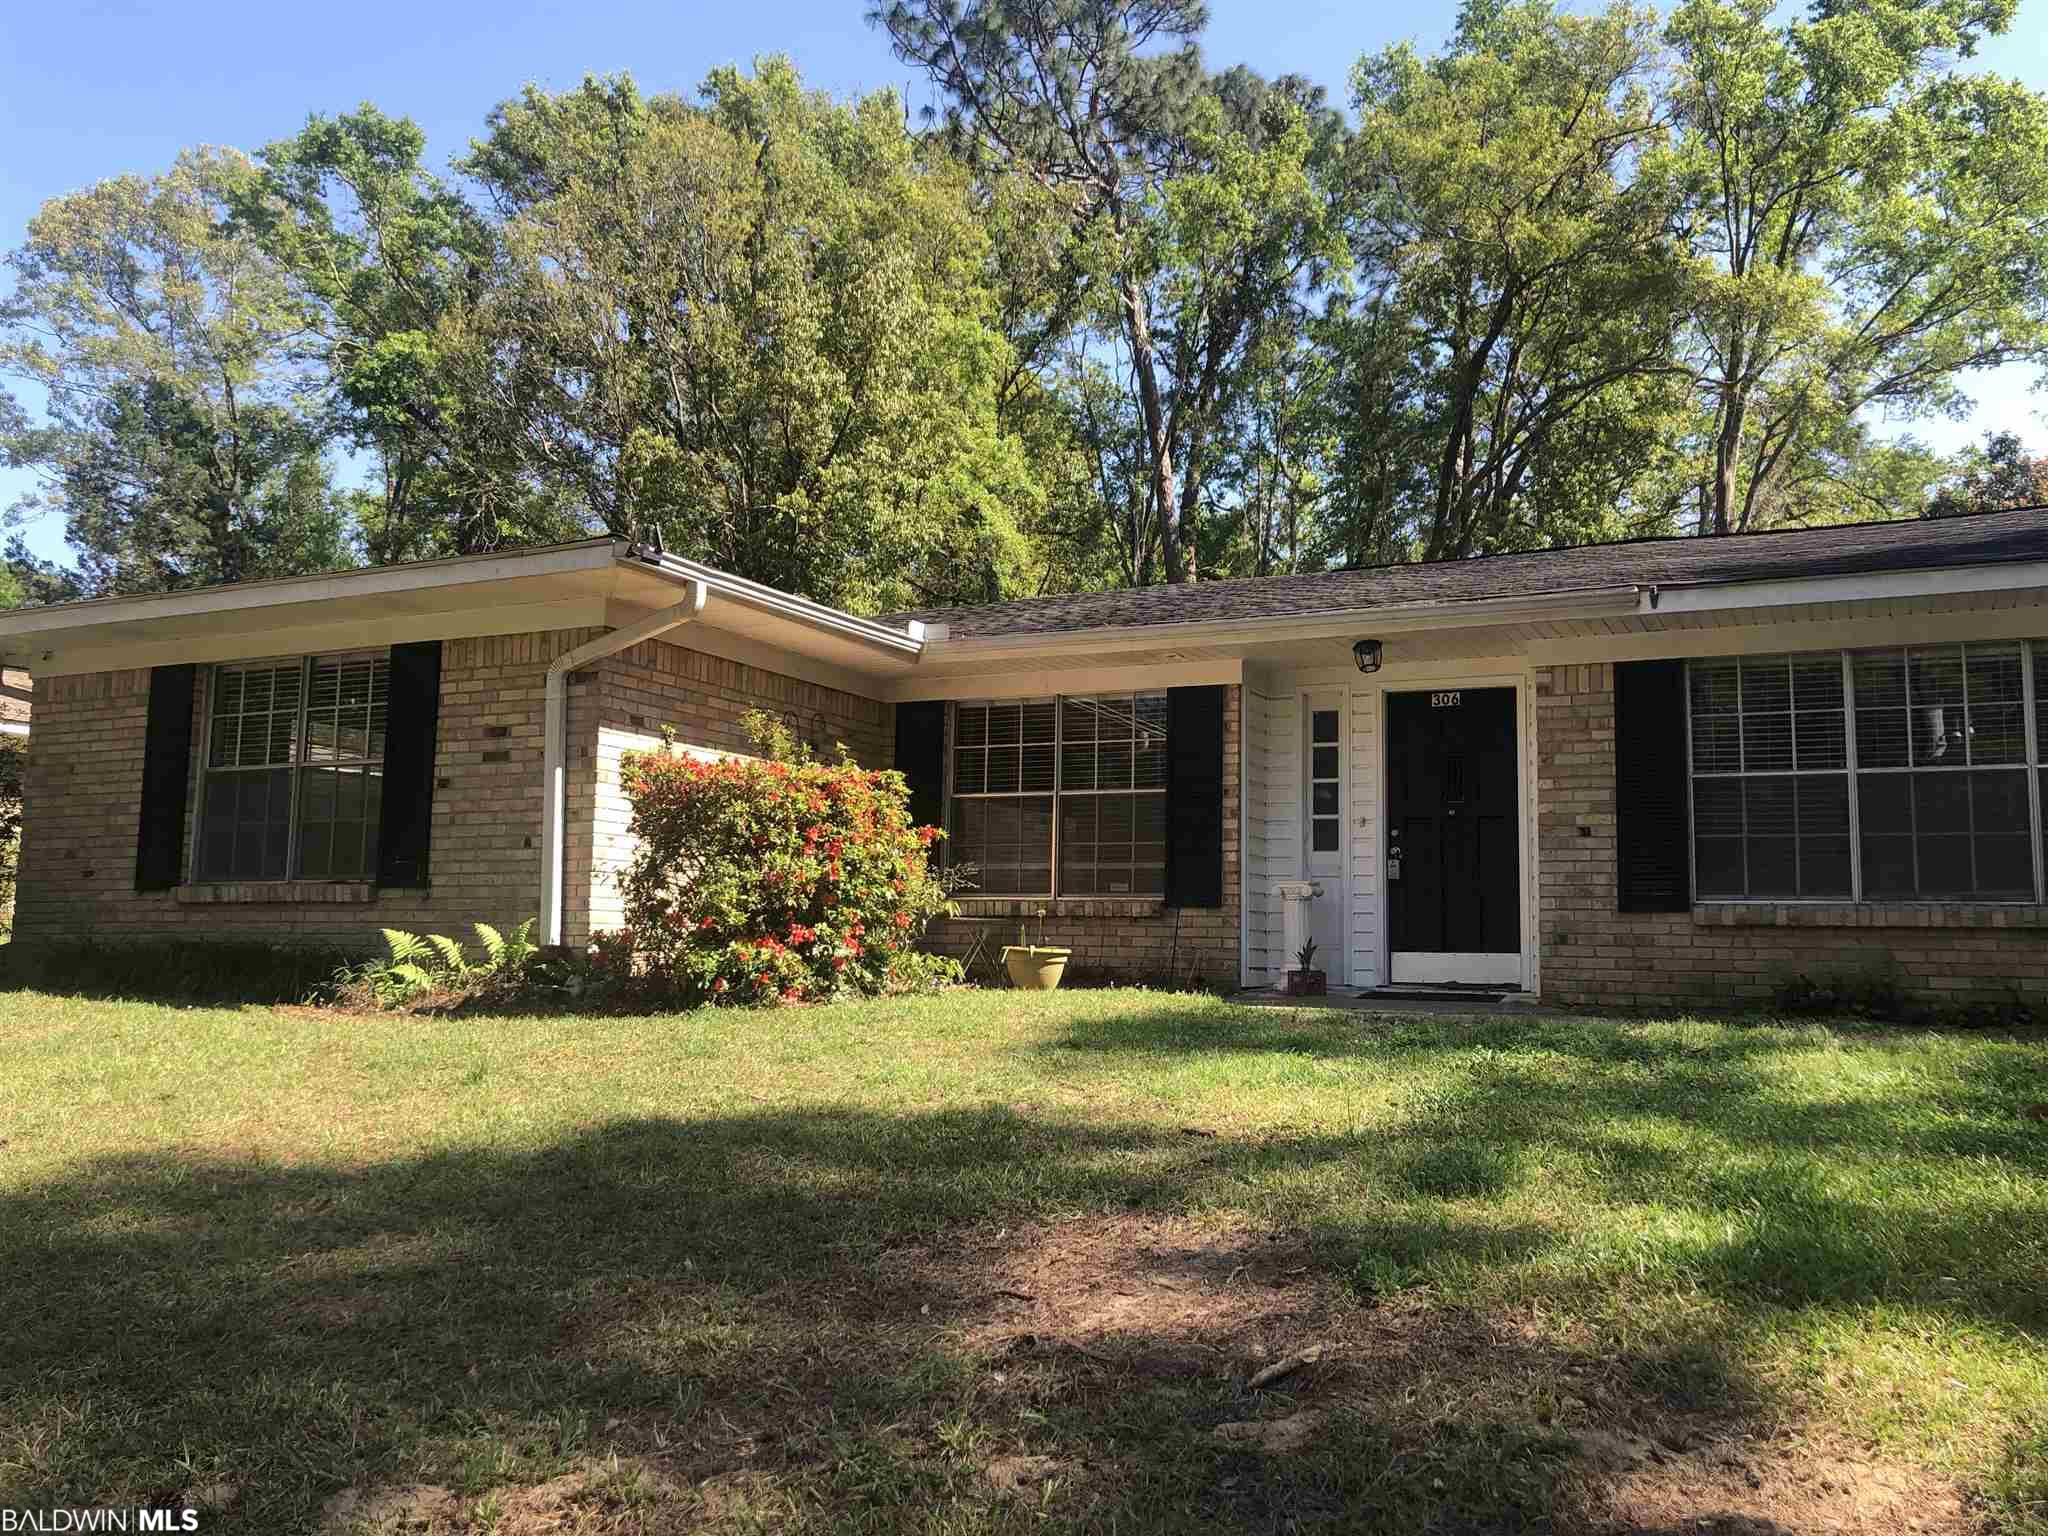 Incredible location that is walkable to schools, shops, restaurants and parks in downtown Fairhope. 4 Bedrooms and 2 baths with traditional ranch style layout.